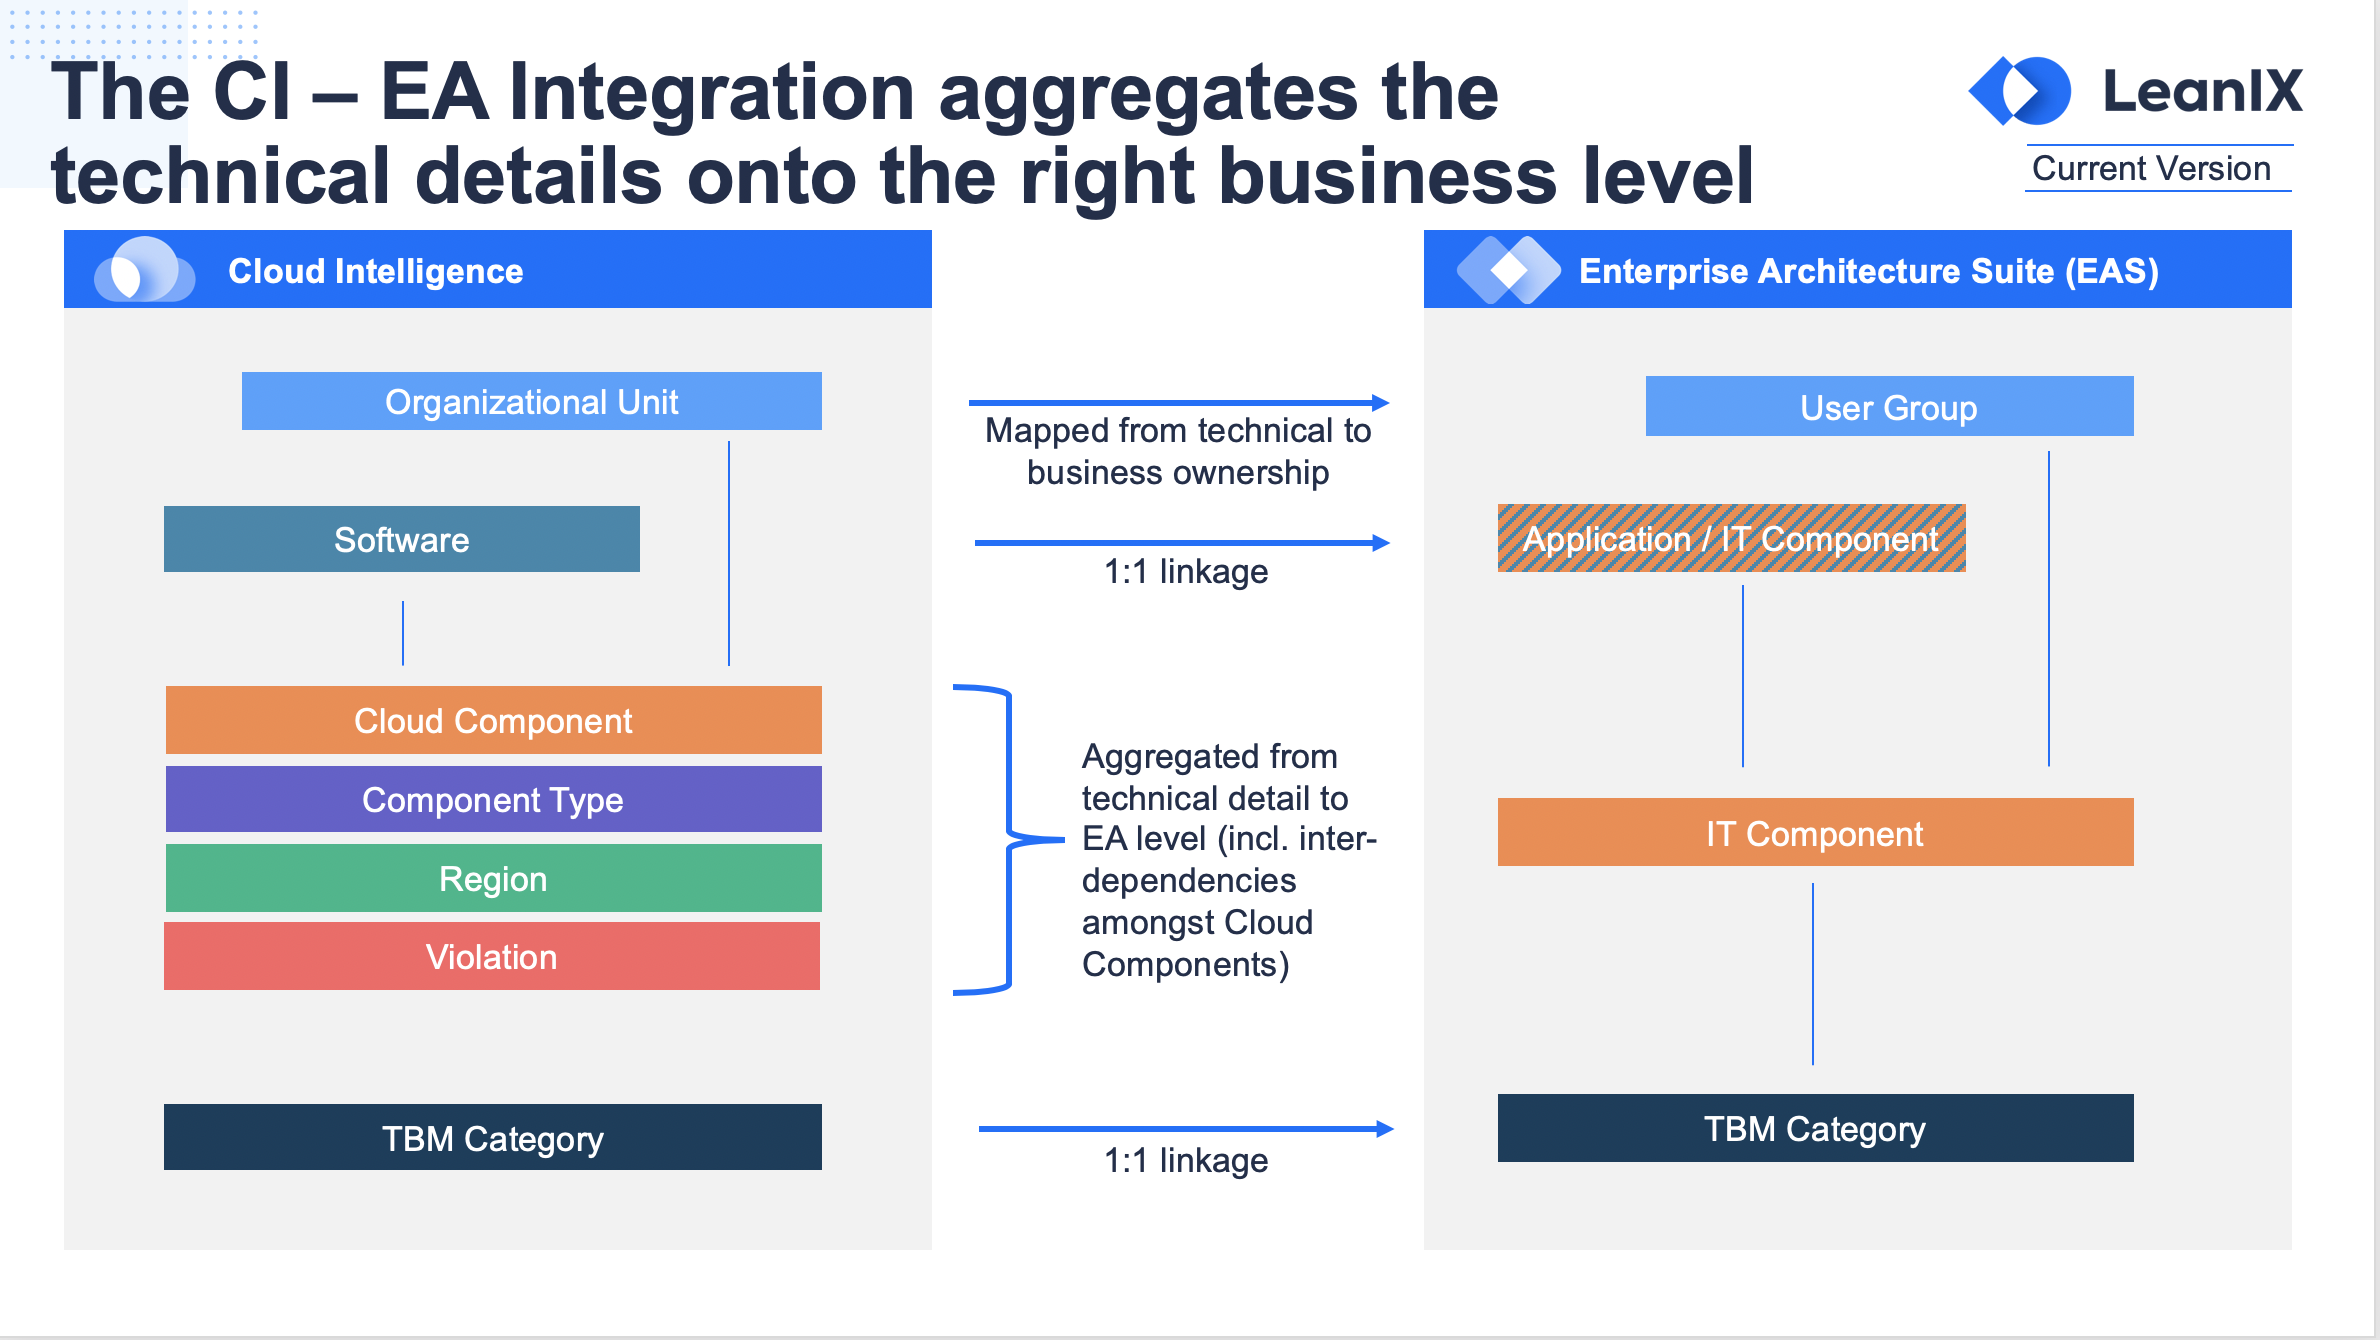 Integration between your Cloud Intelligence workspace and the EA Suite